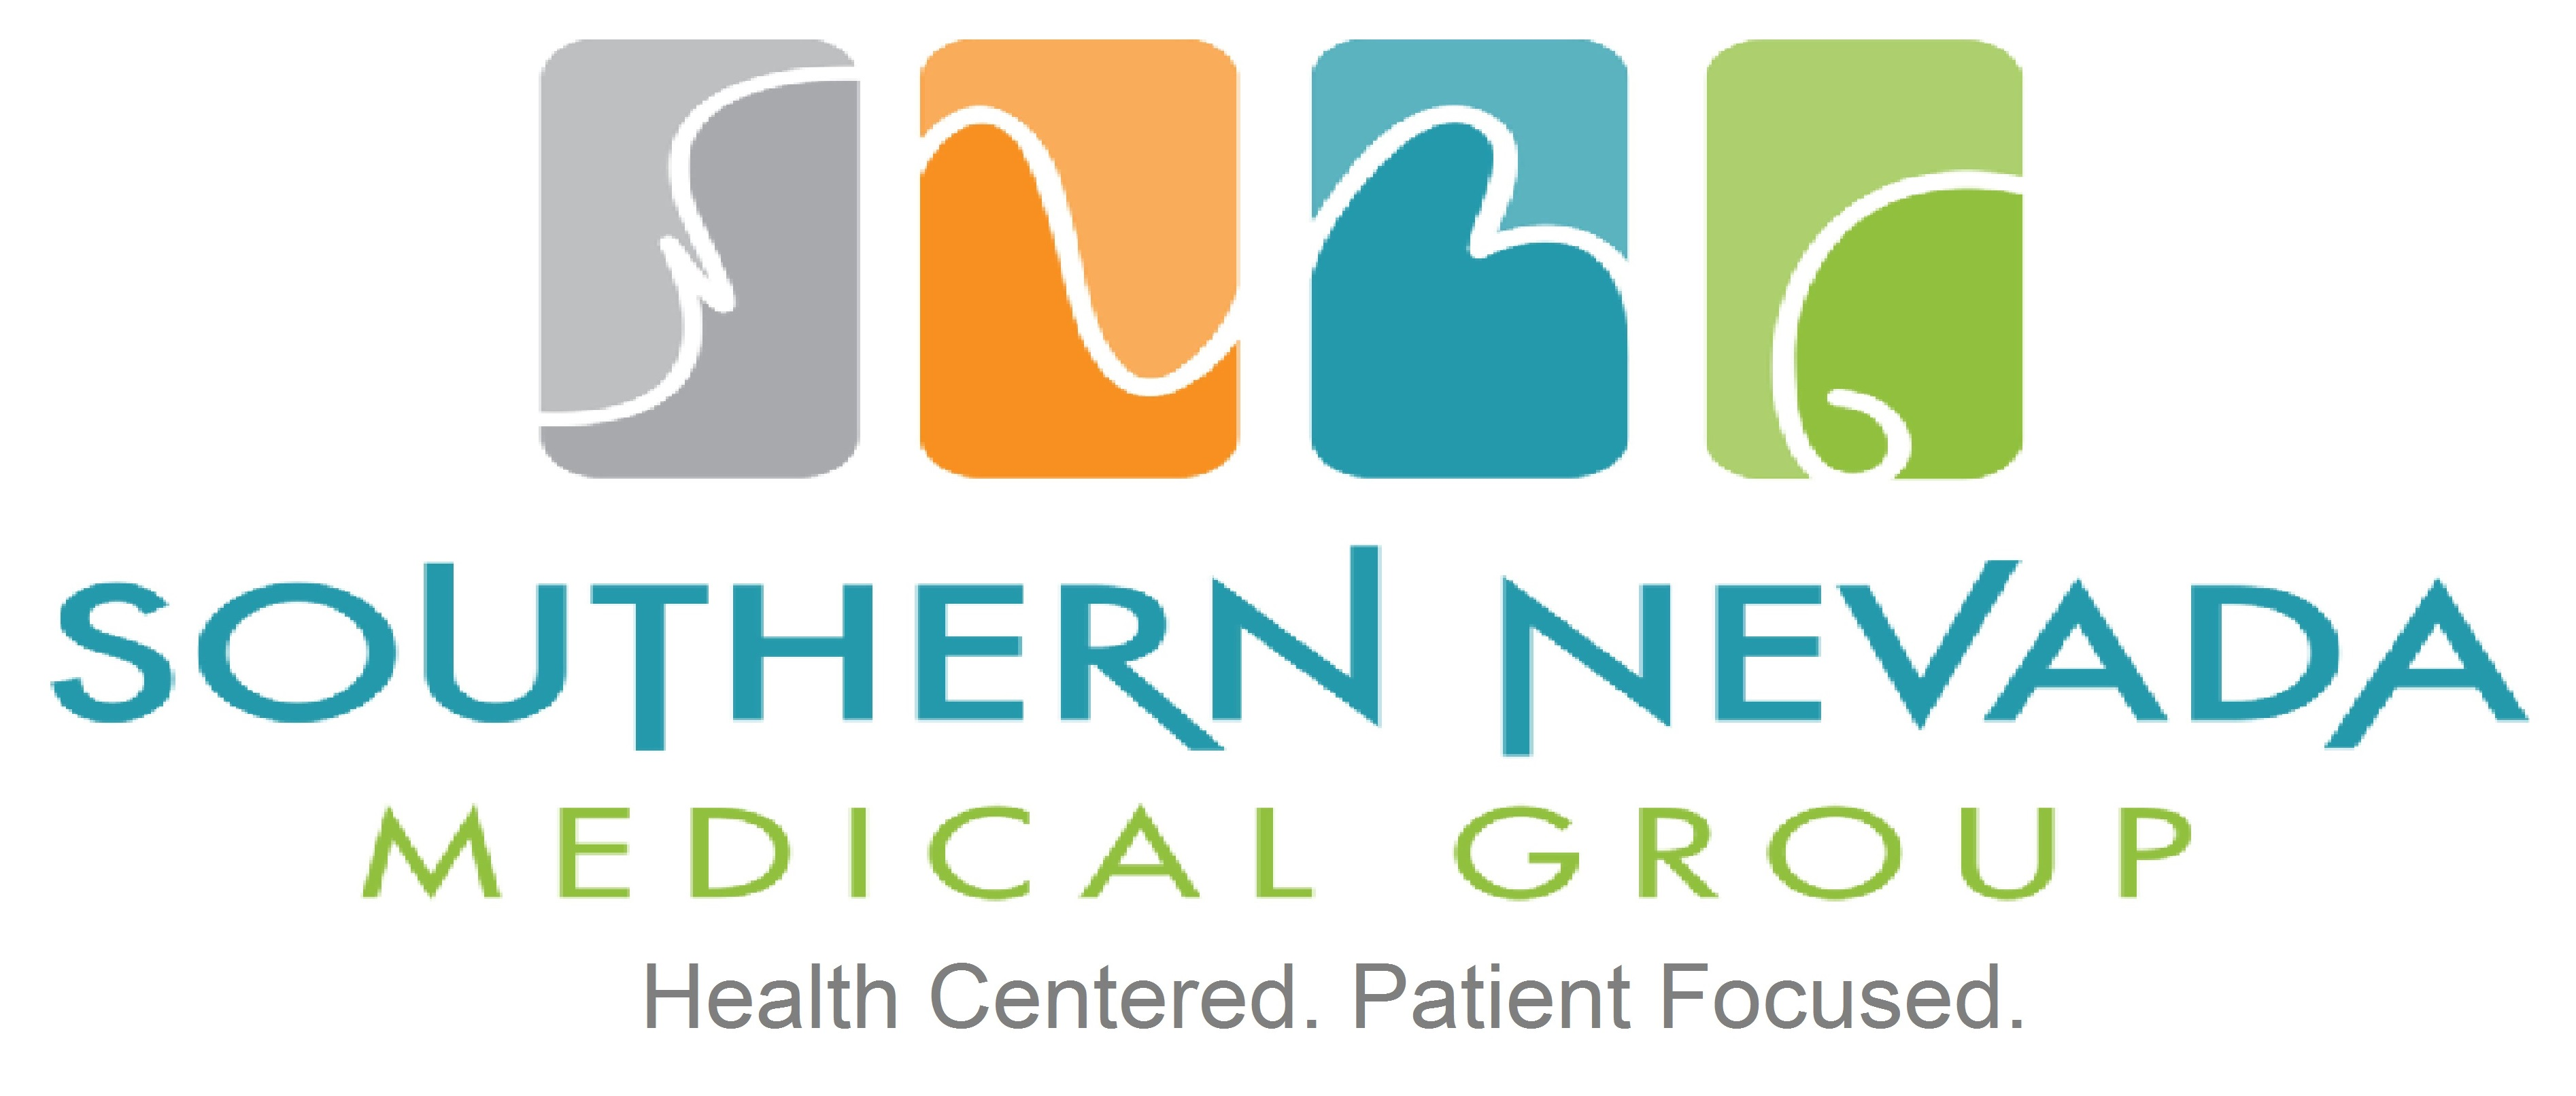 Southern Nevada Medical Group